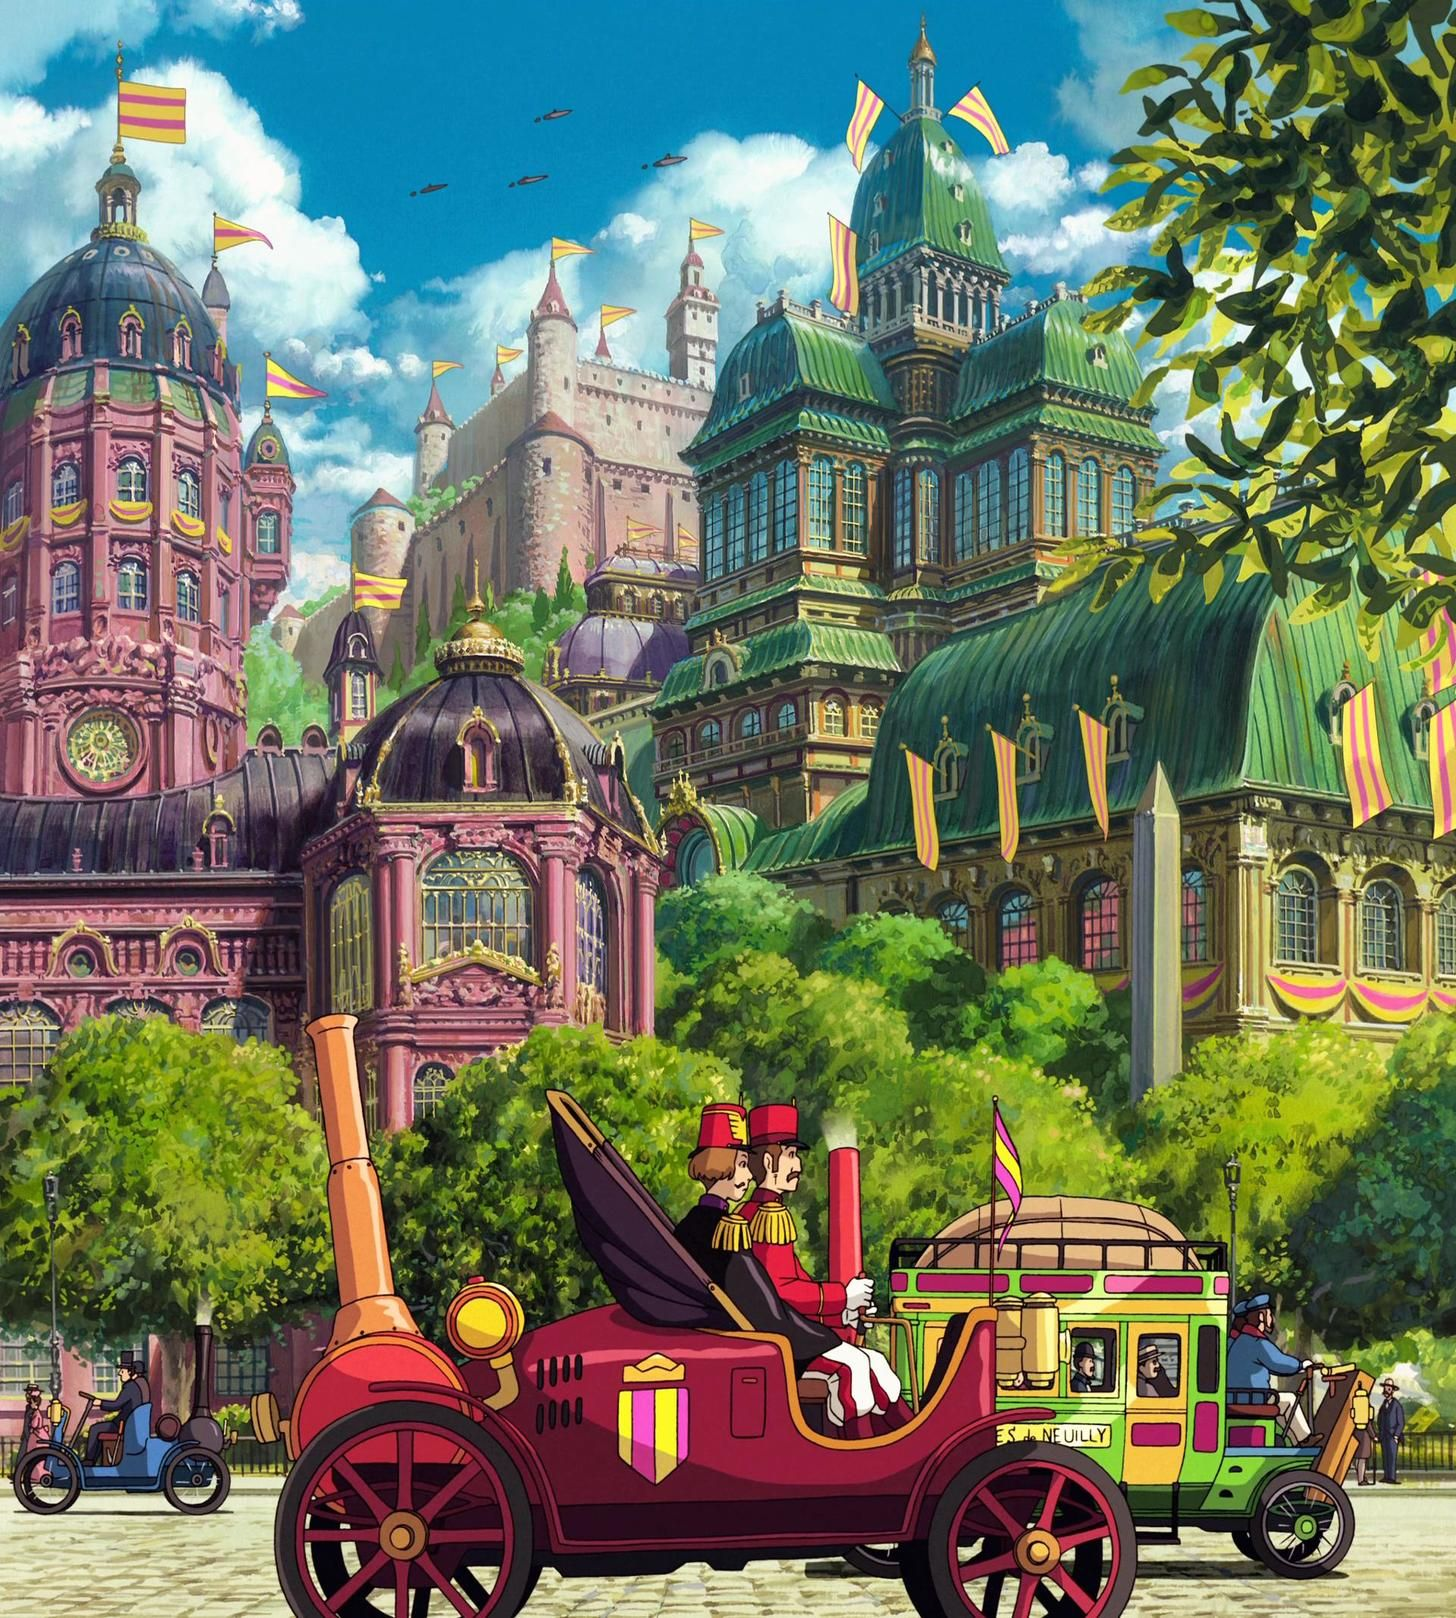 In honour of Hayao Miyazaki's birthday, have a moderate dump of his beautiful landscapes.